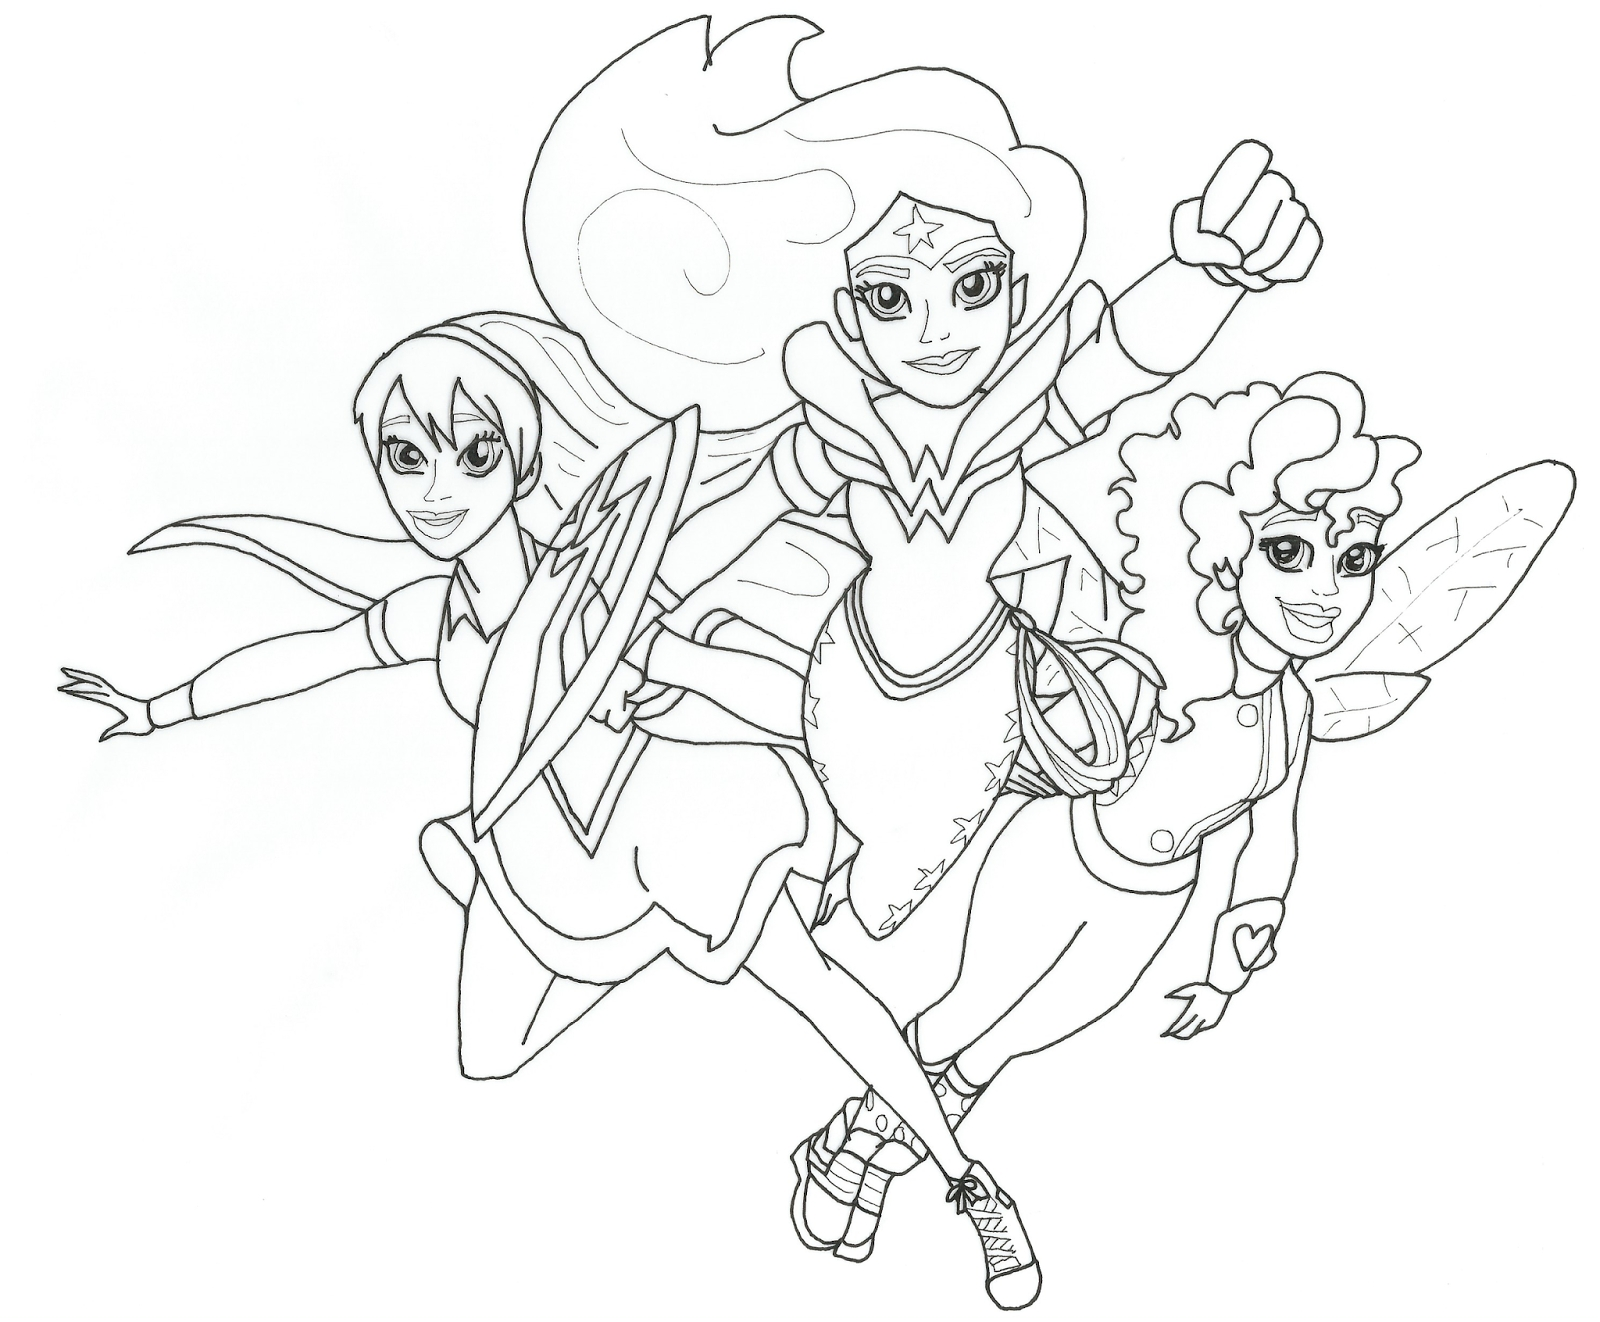 girl superhero coloring pages - dc super hero girls free printable